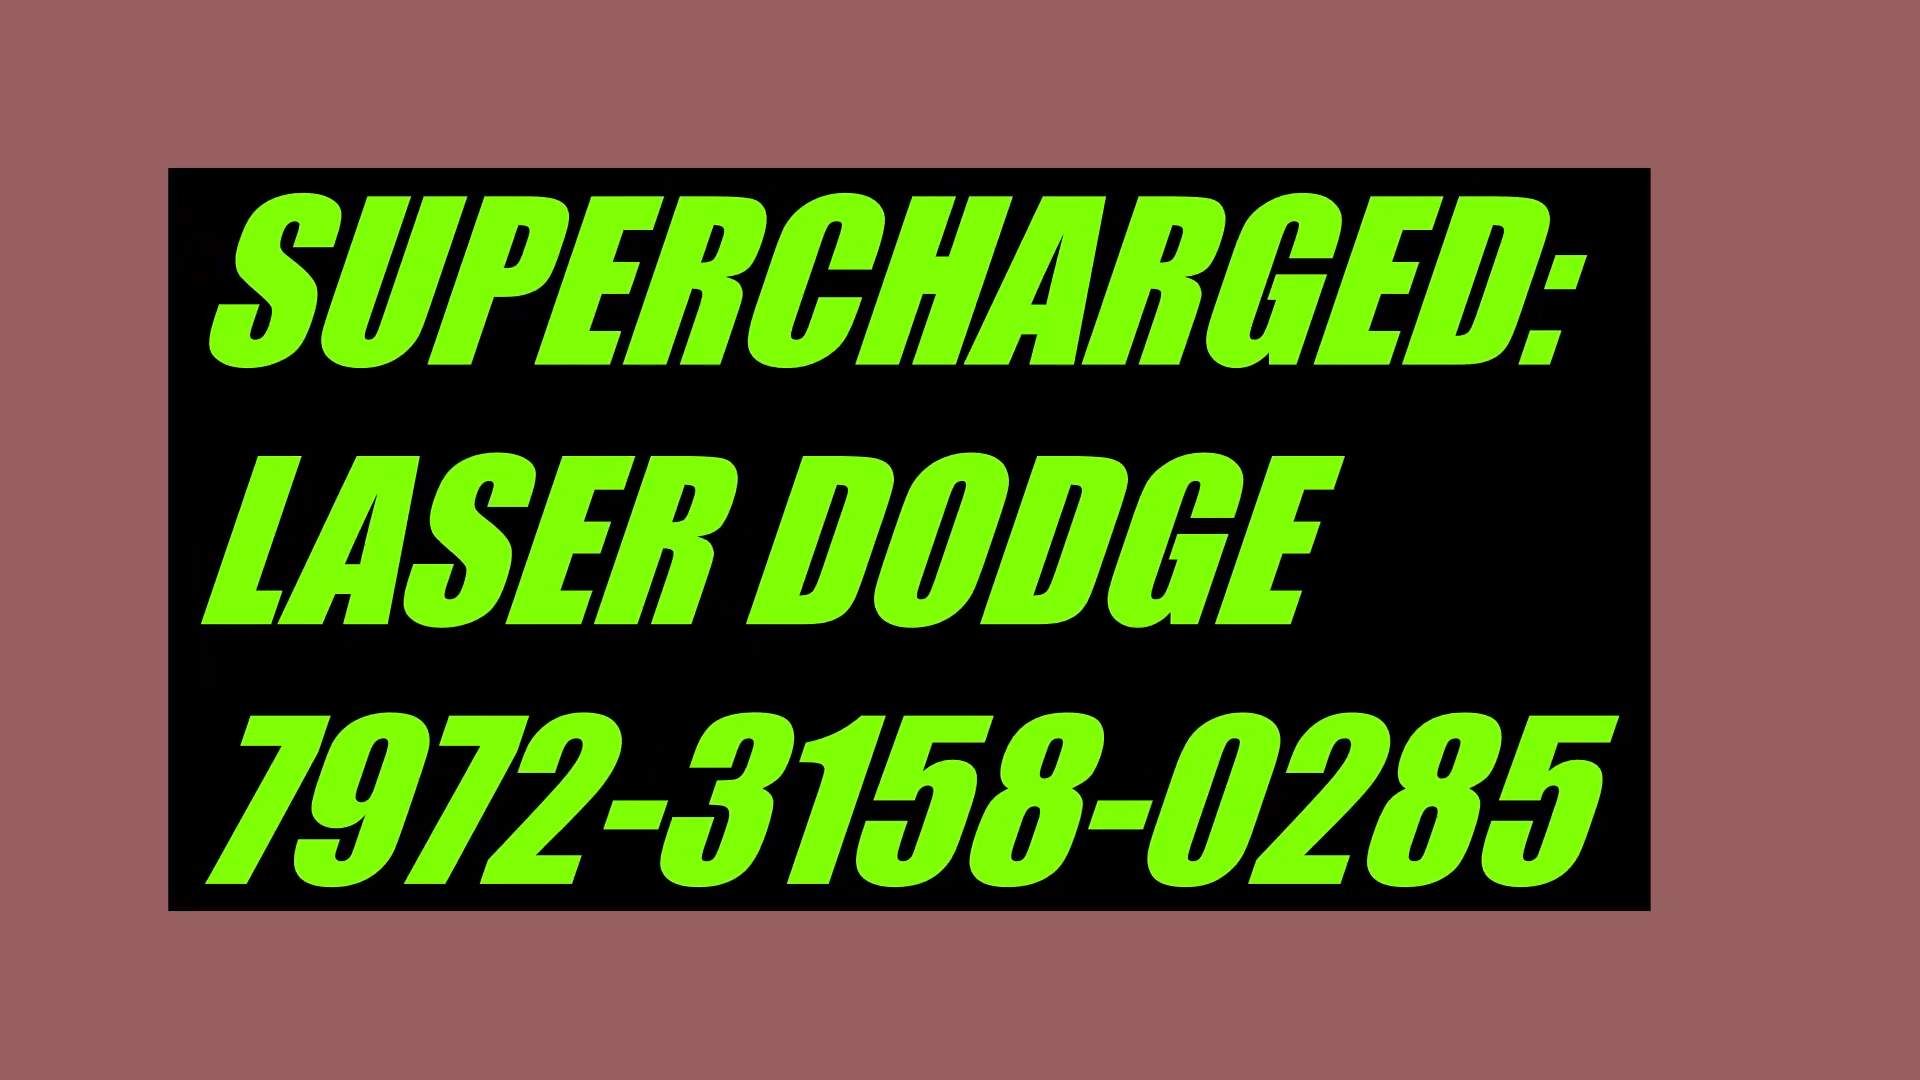 SUPERCHARGED: LASER DODGE